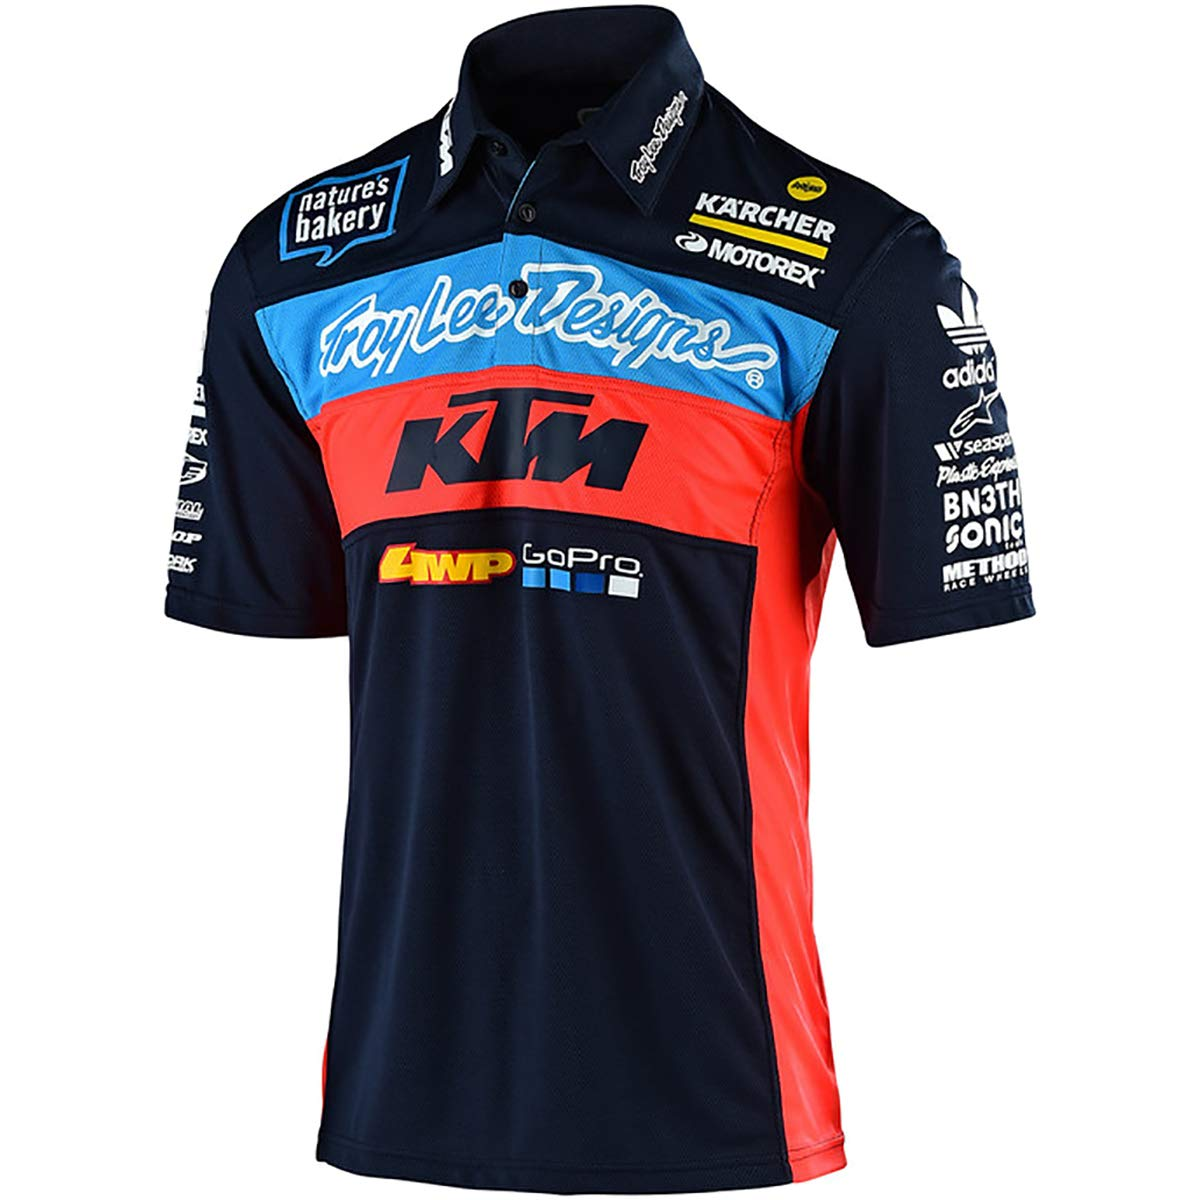 2019 Troy Lee Designs Men's KTM Team Pit Shirts,Medium,Navy